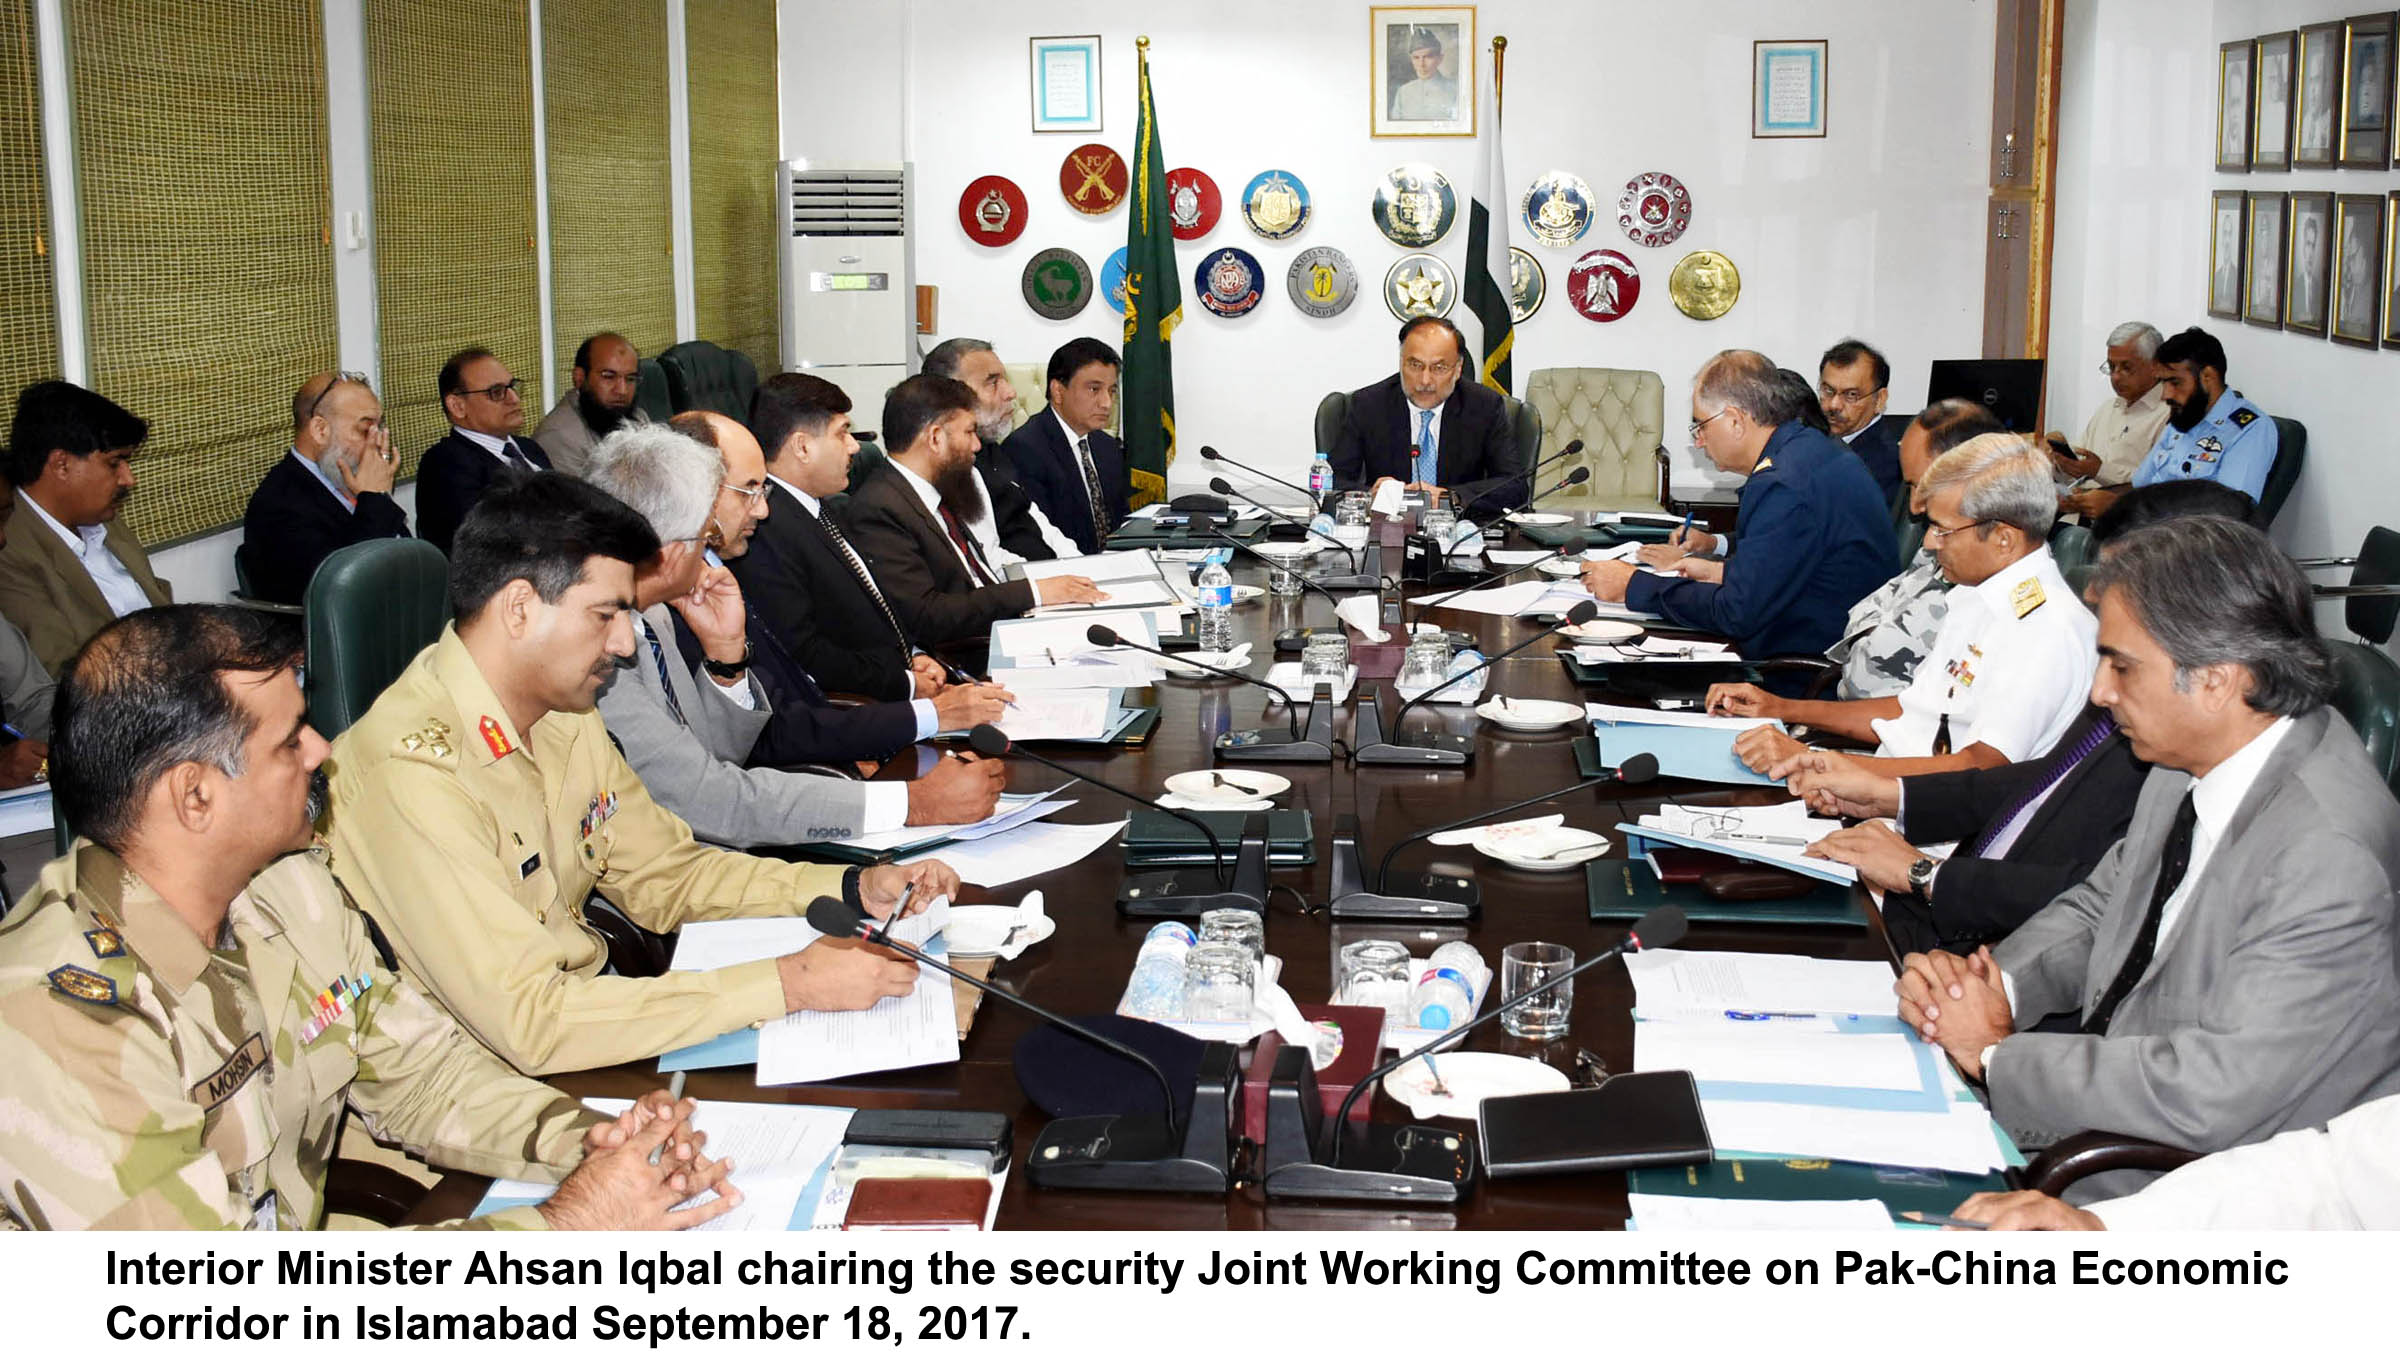 Security Joint Working Committee Meeting on CPEC on 18 September 2017